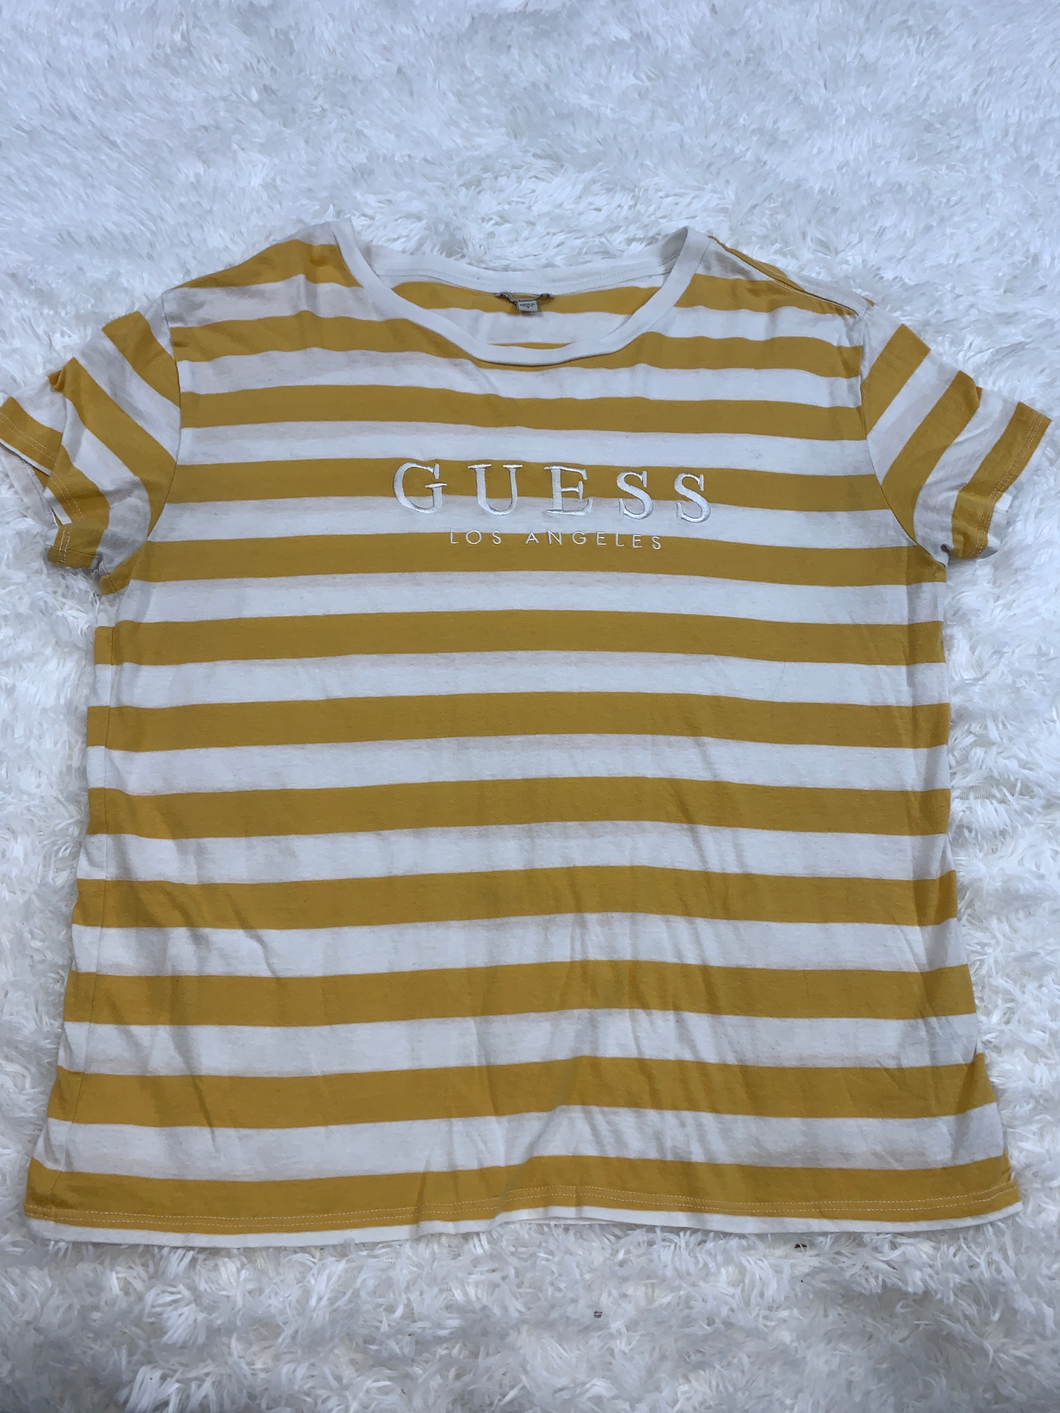 Guess Short Sleeve Top Size Small